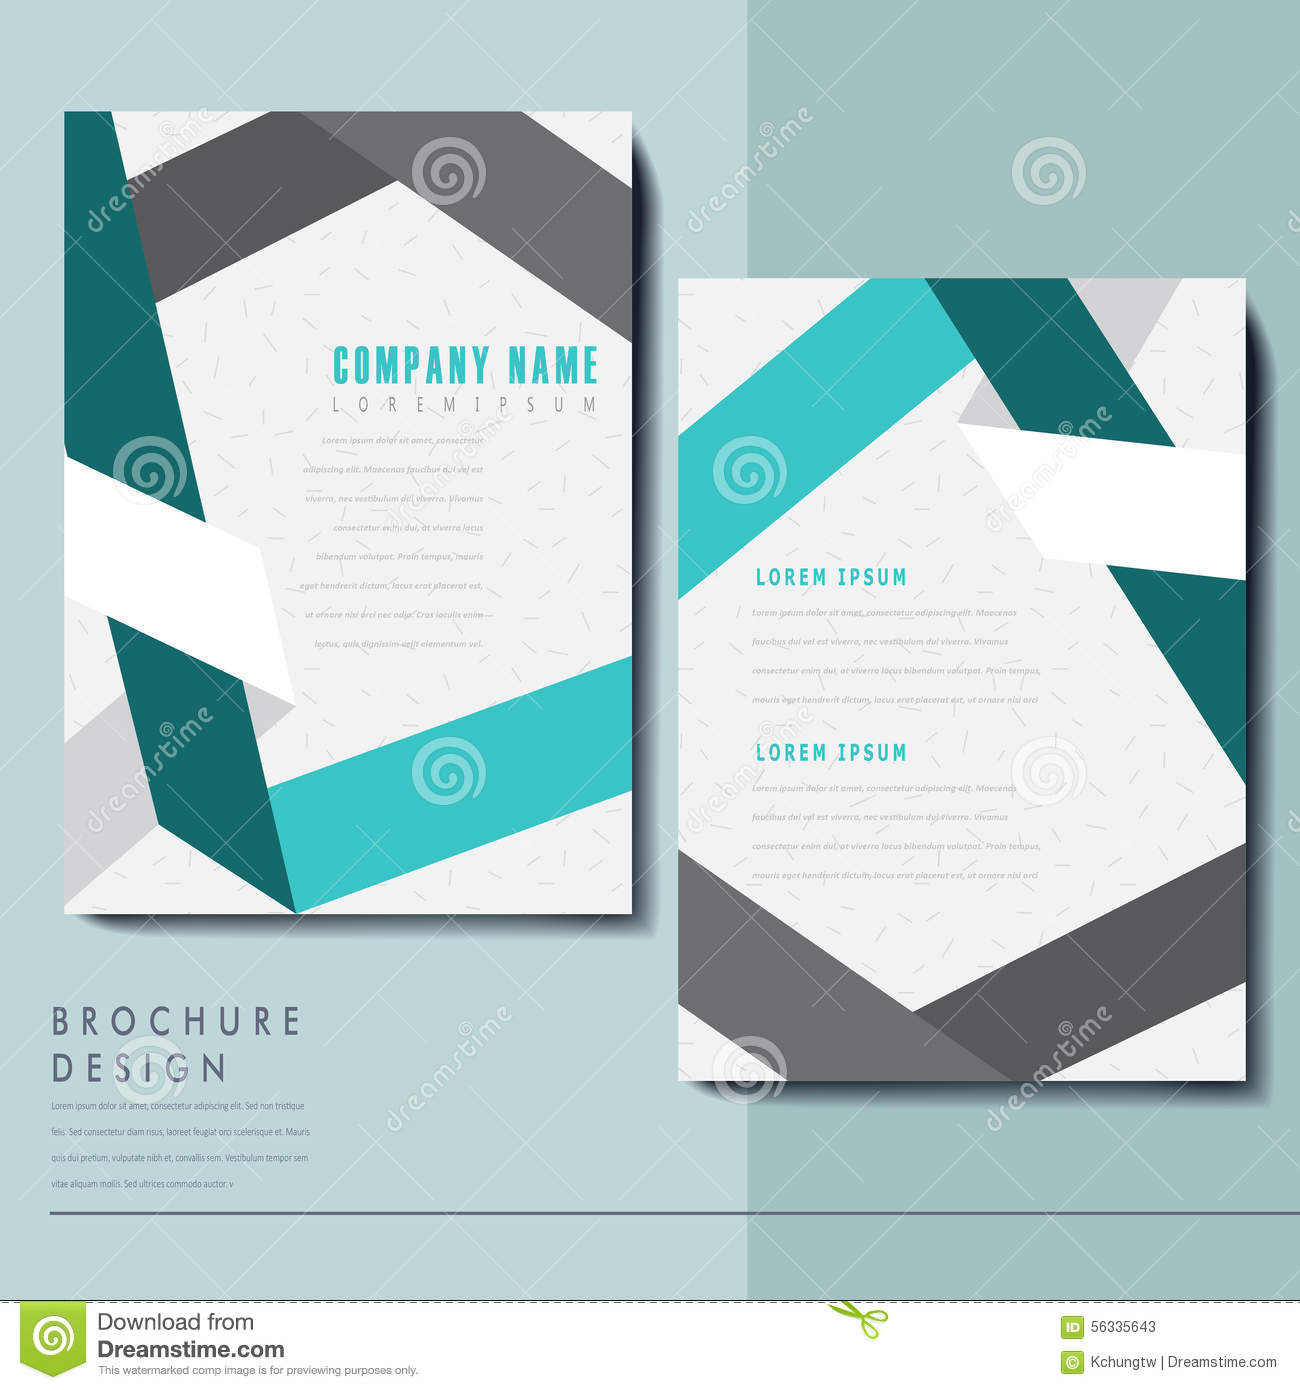 classy brochure design - elegant brochure template design stock vector